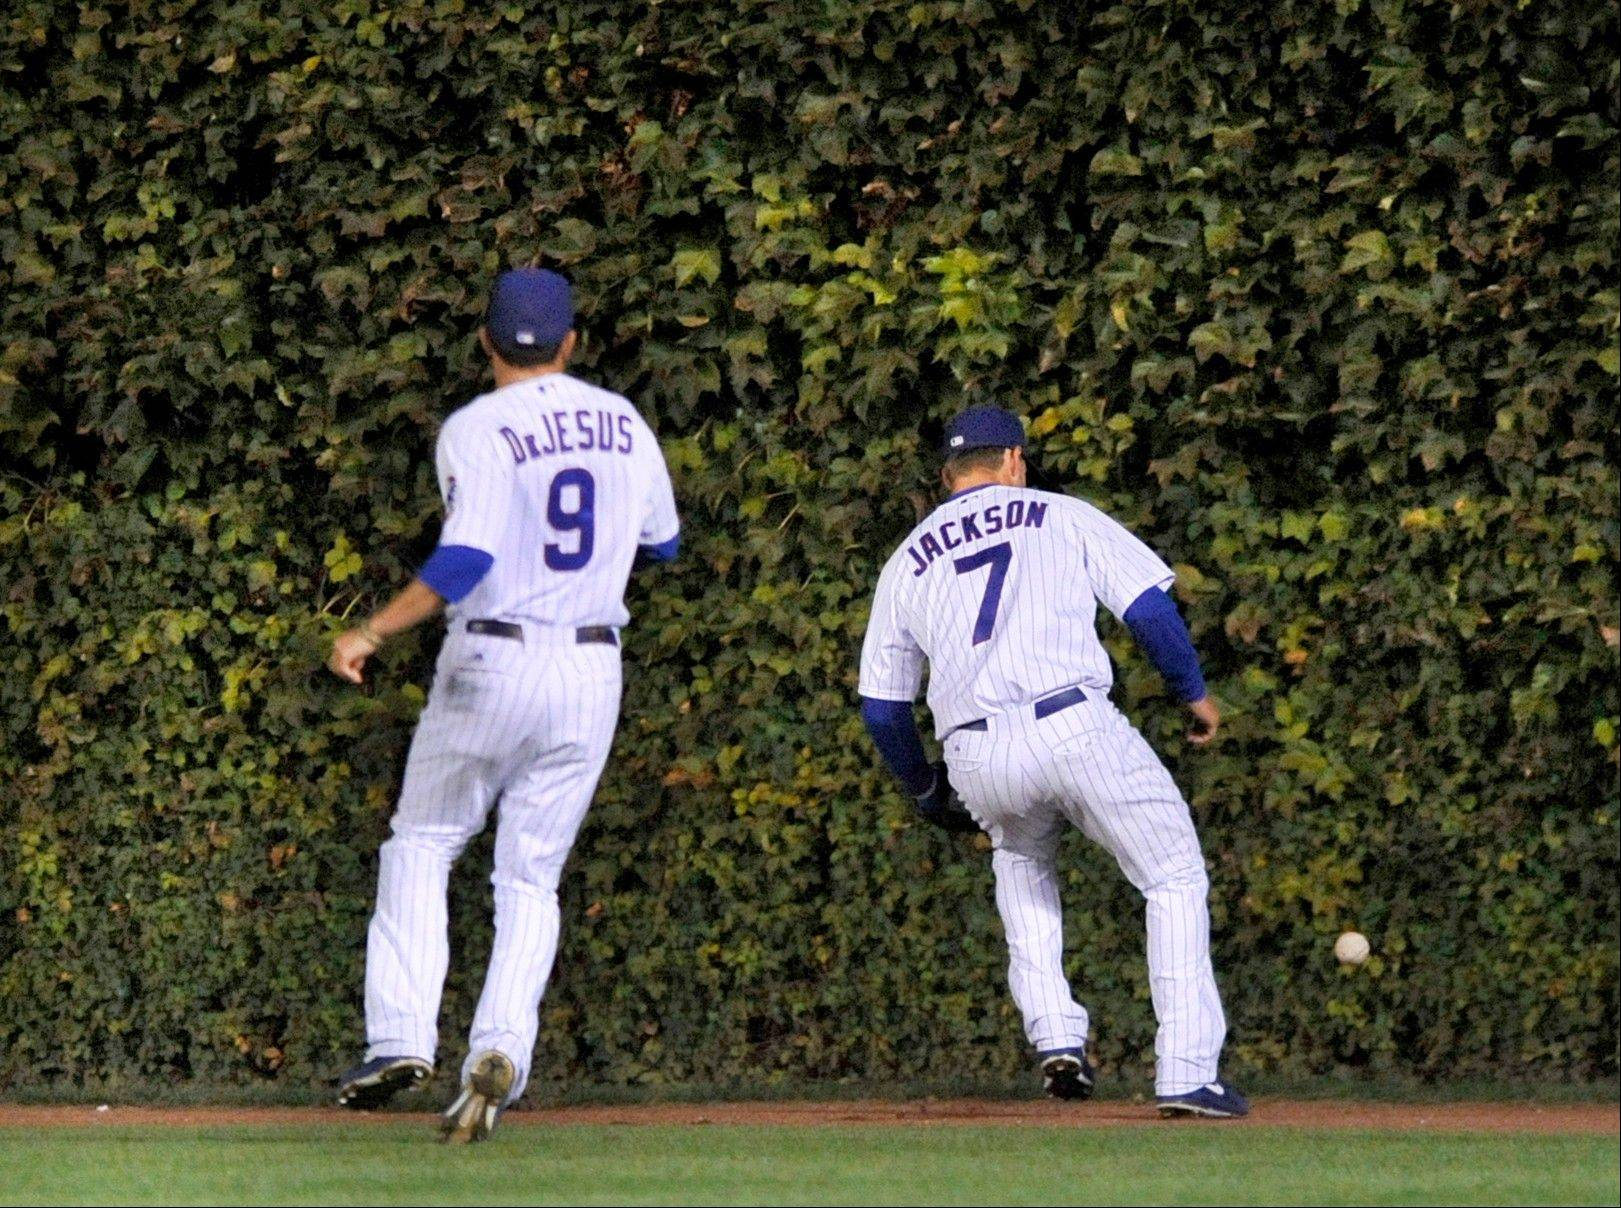 Cubs center fielder Brett Jackson right, chases down a 3-run double by Cincinnati Reds' Ryan Hanigan as right fielder David DeJesus left, watches during the sixth inning of a baseball game in Chicago, Tuesday, Sept. 18, 2012.